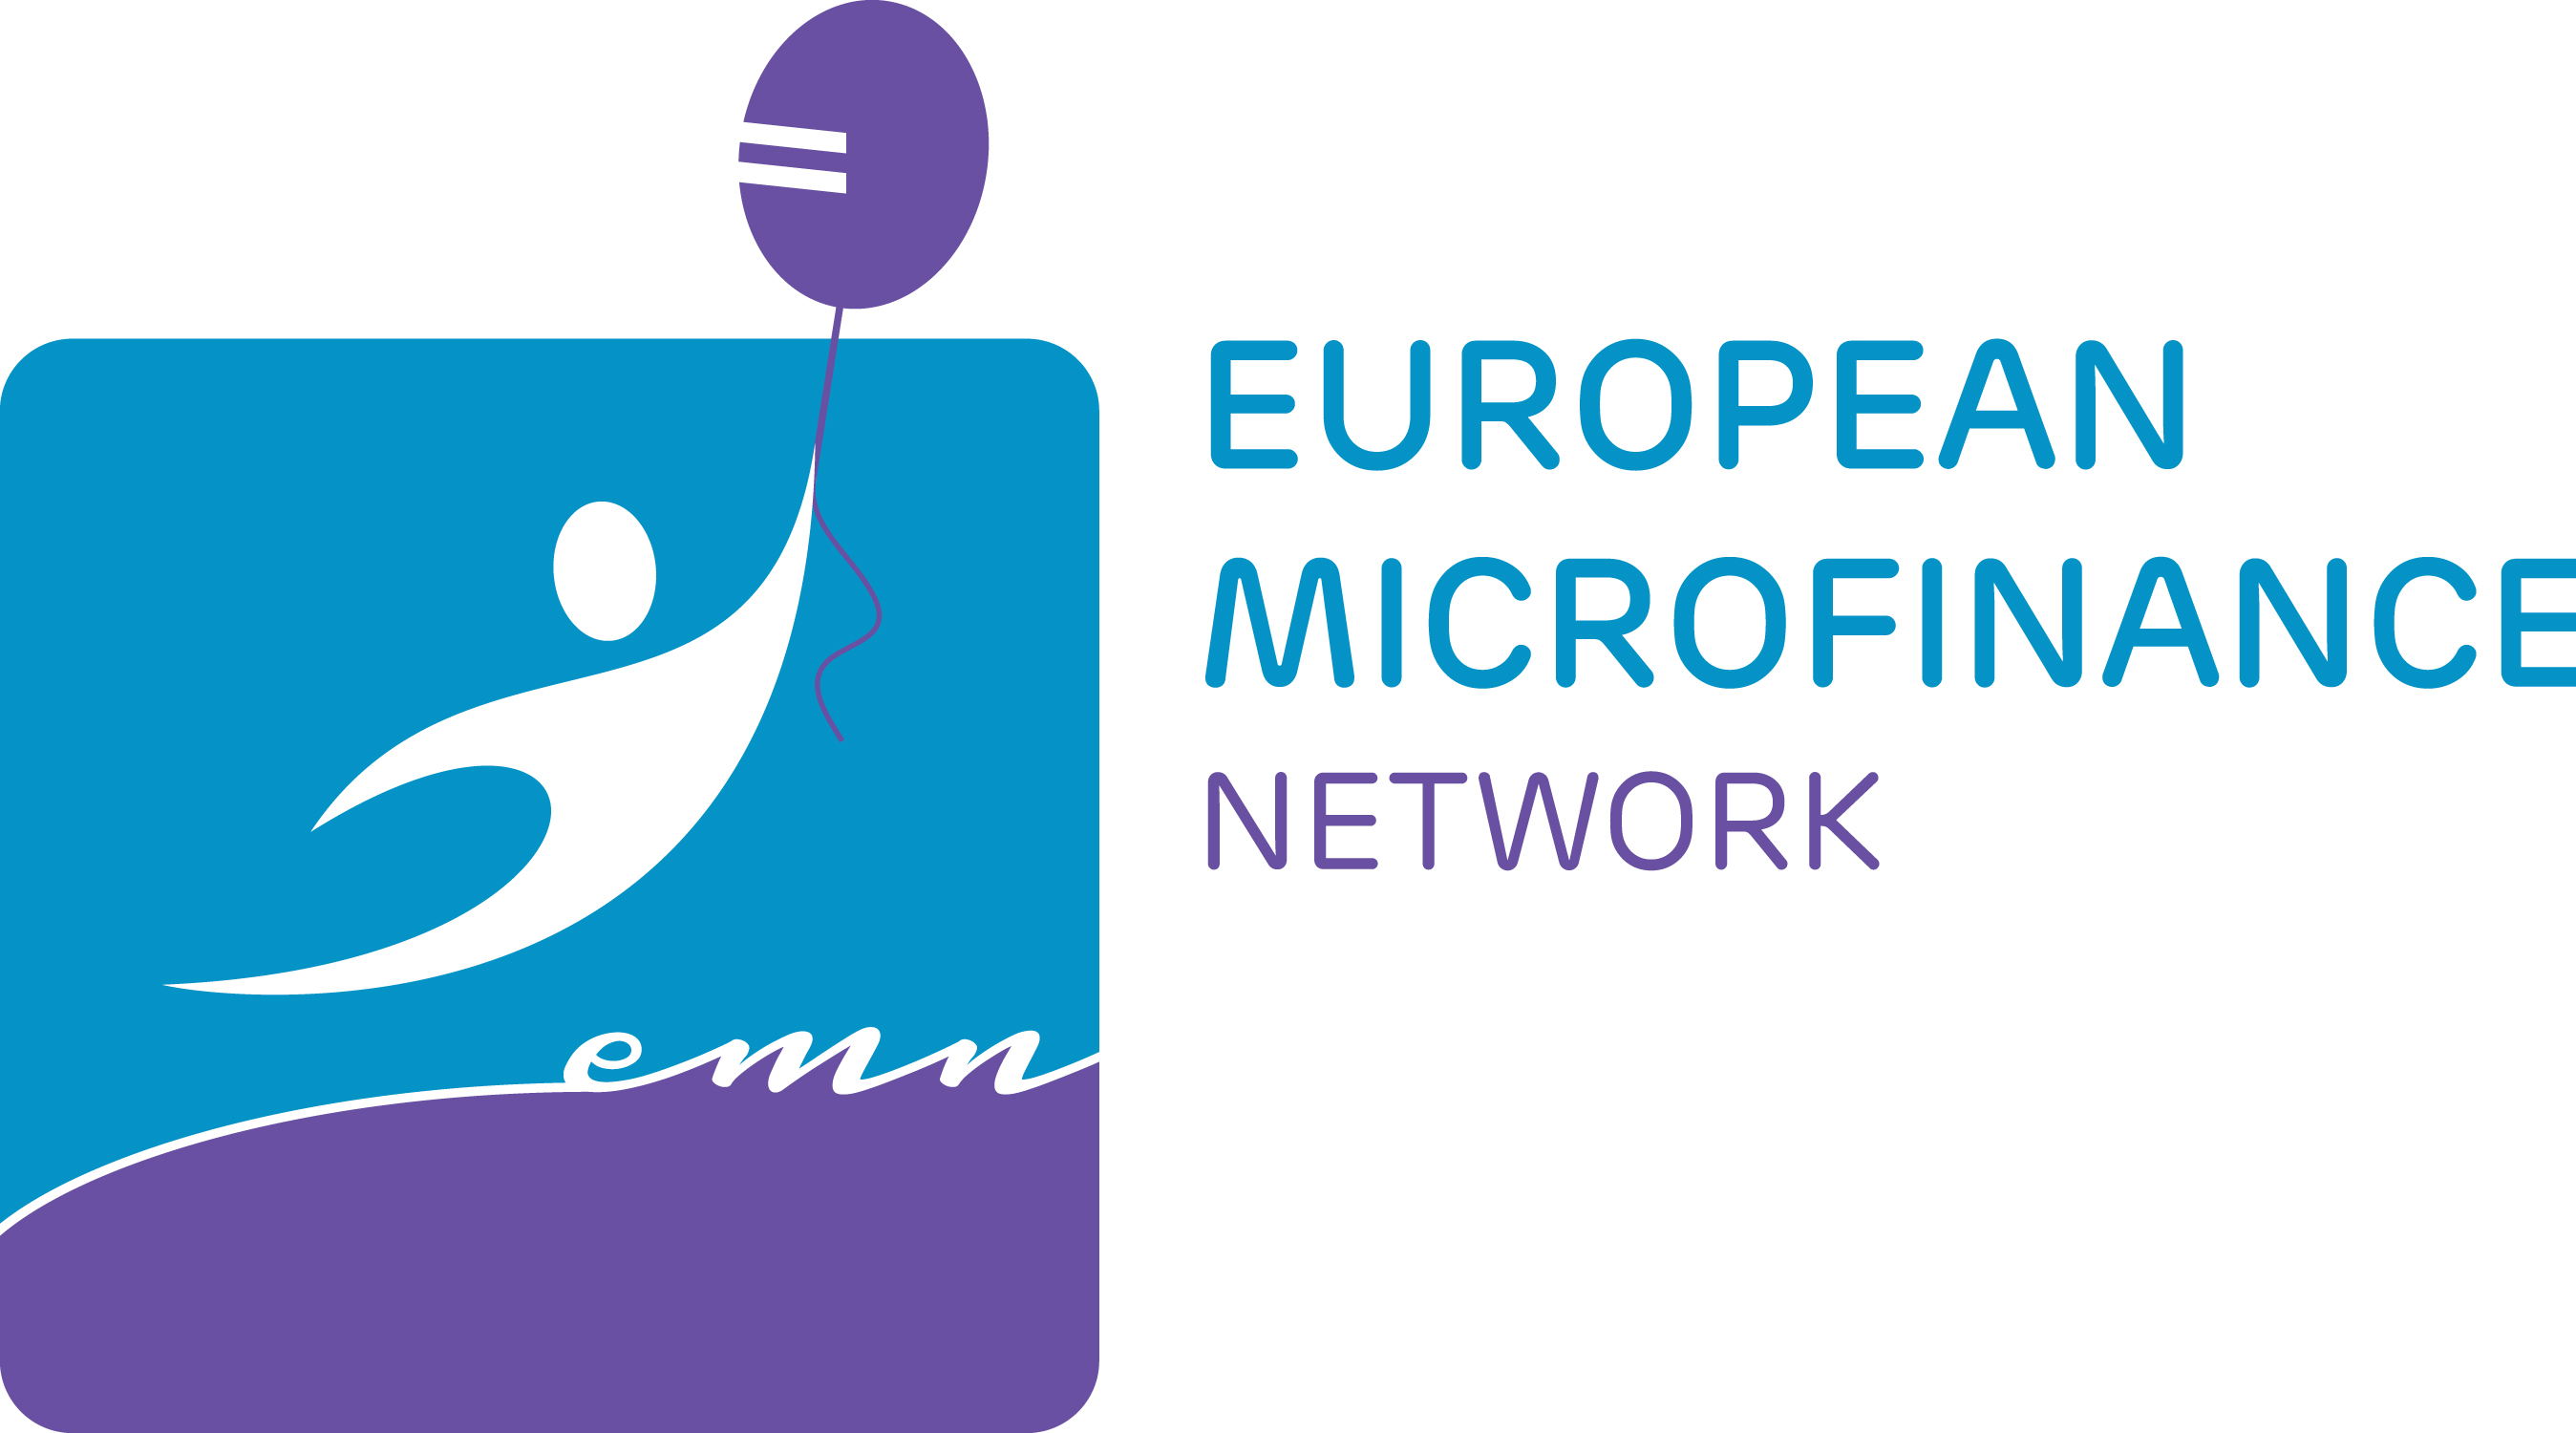 European Microfinance logo